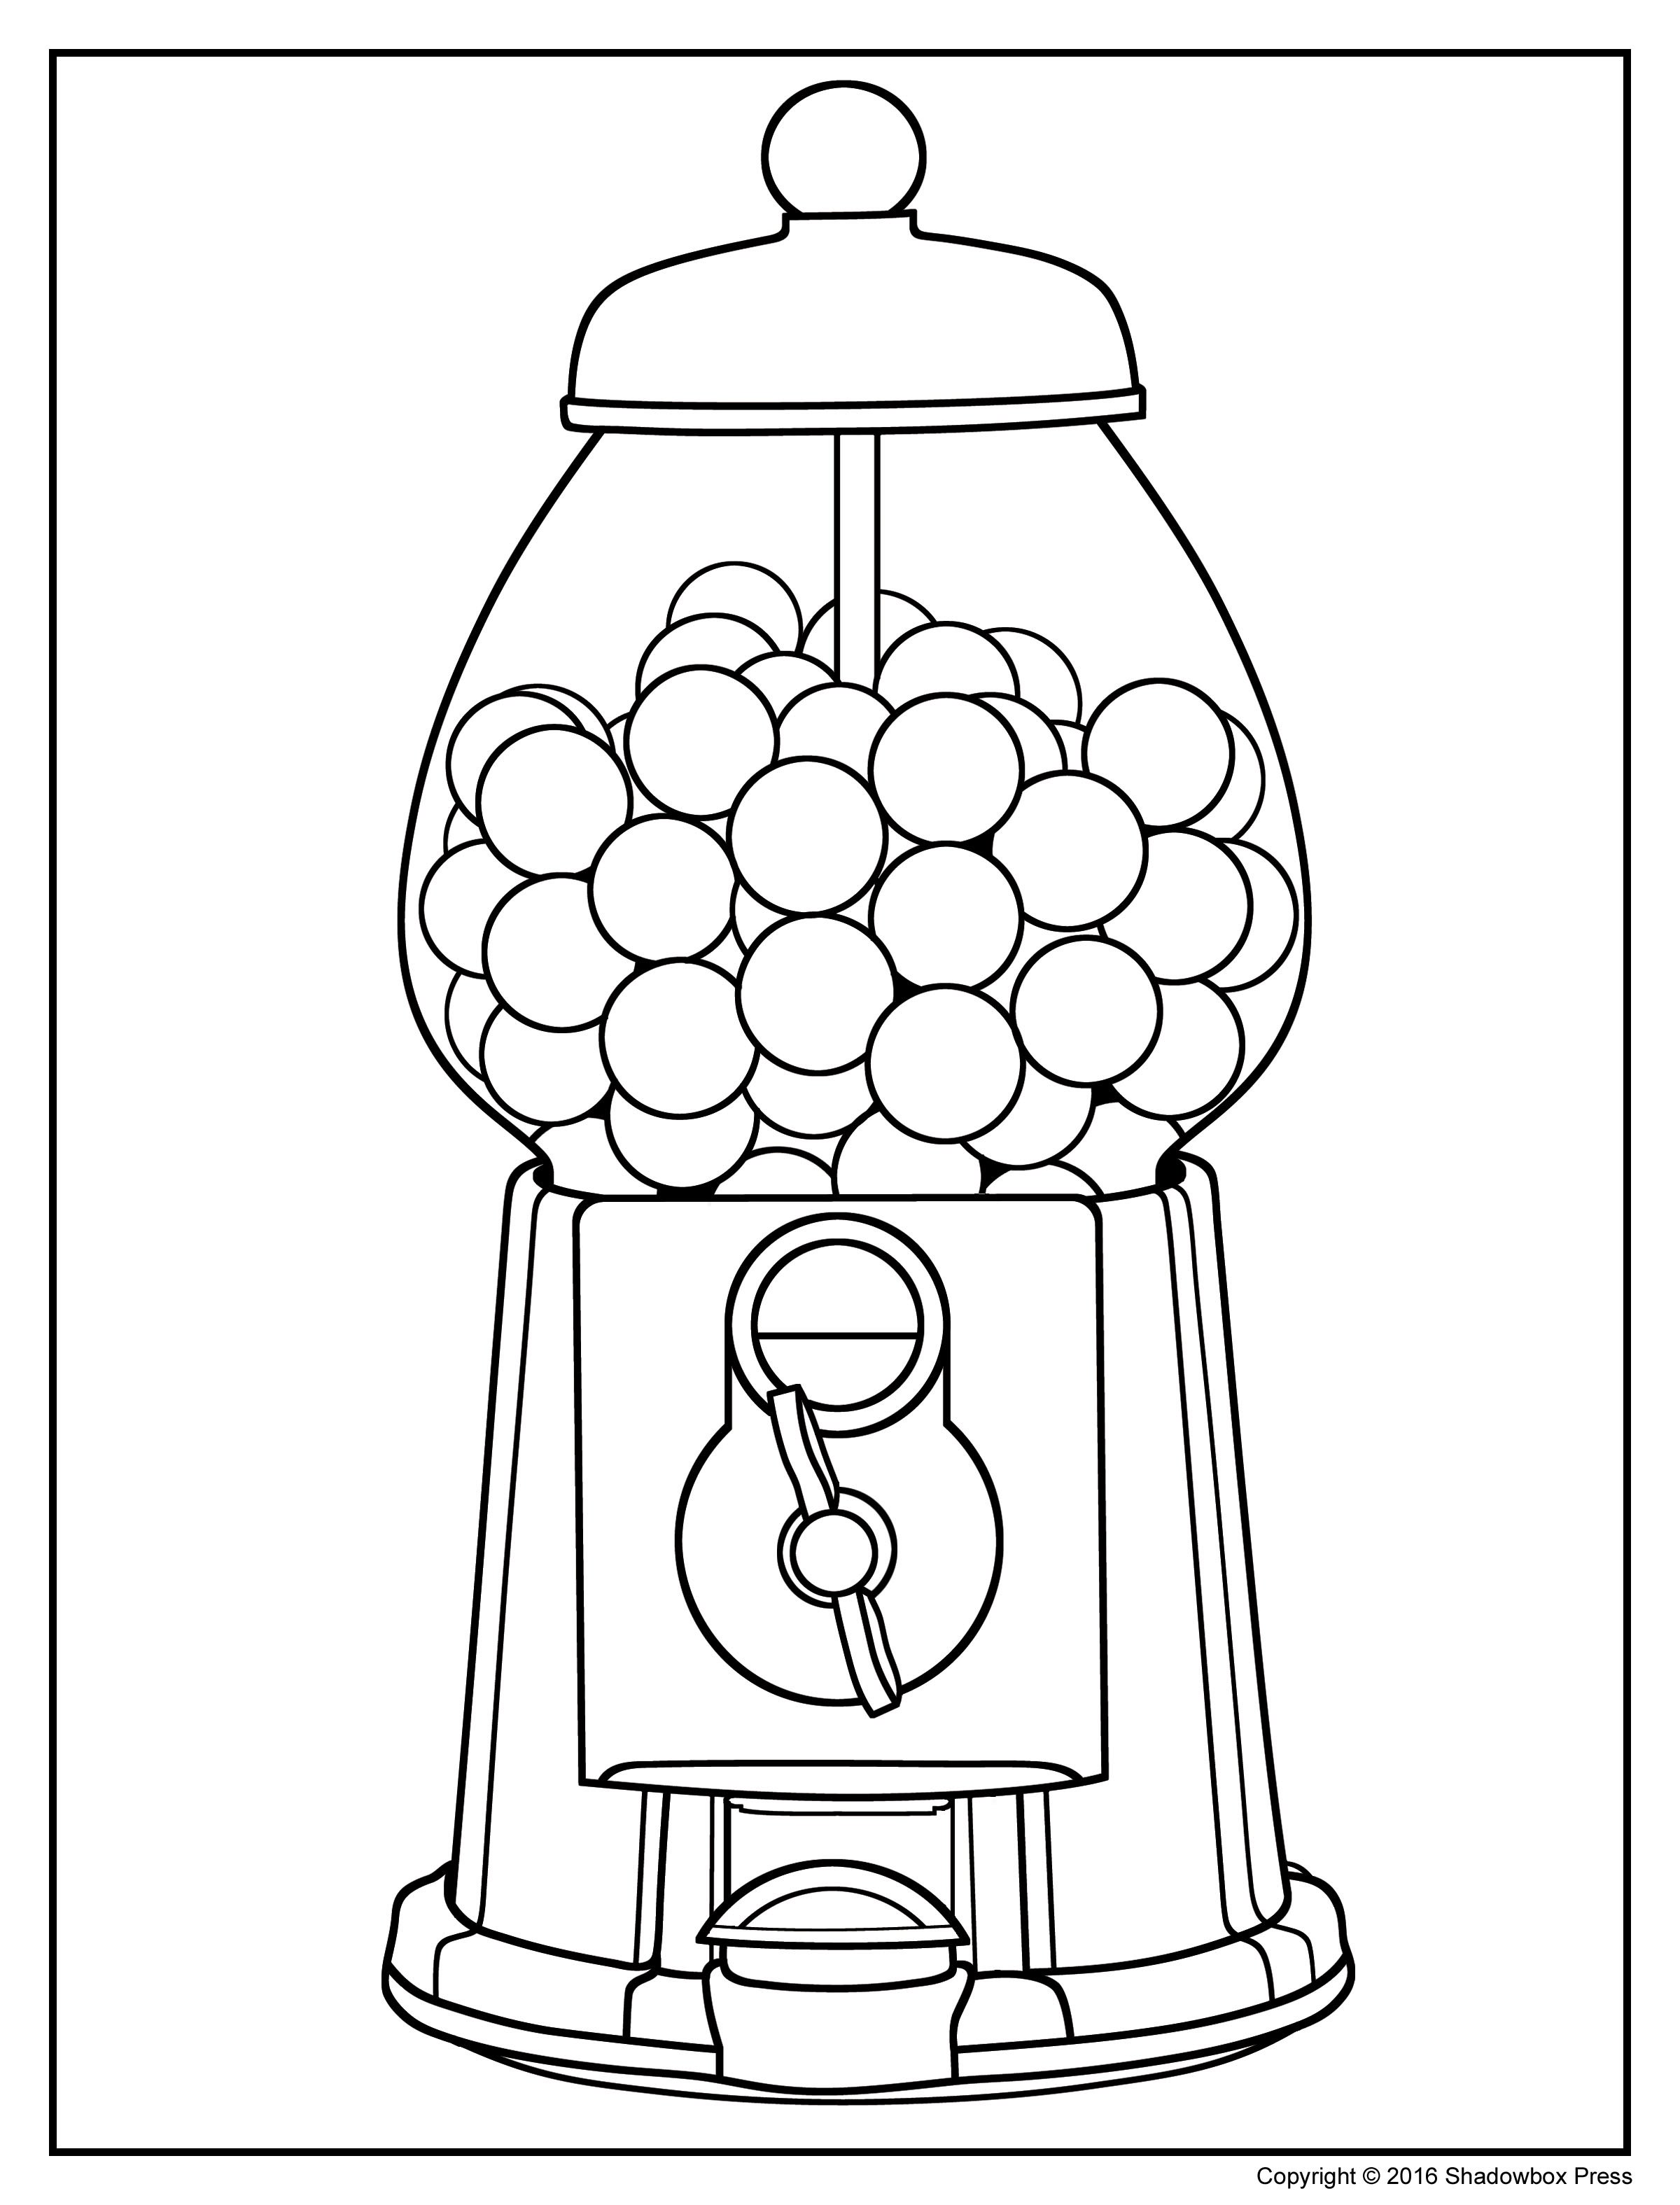 2400x3150 Clip Art Bubble Gum Machine Coloring Page Mycoloring Free Within